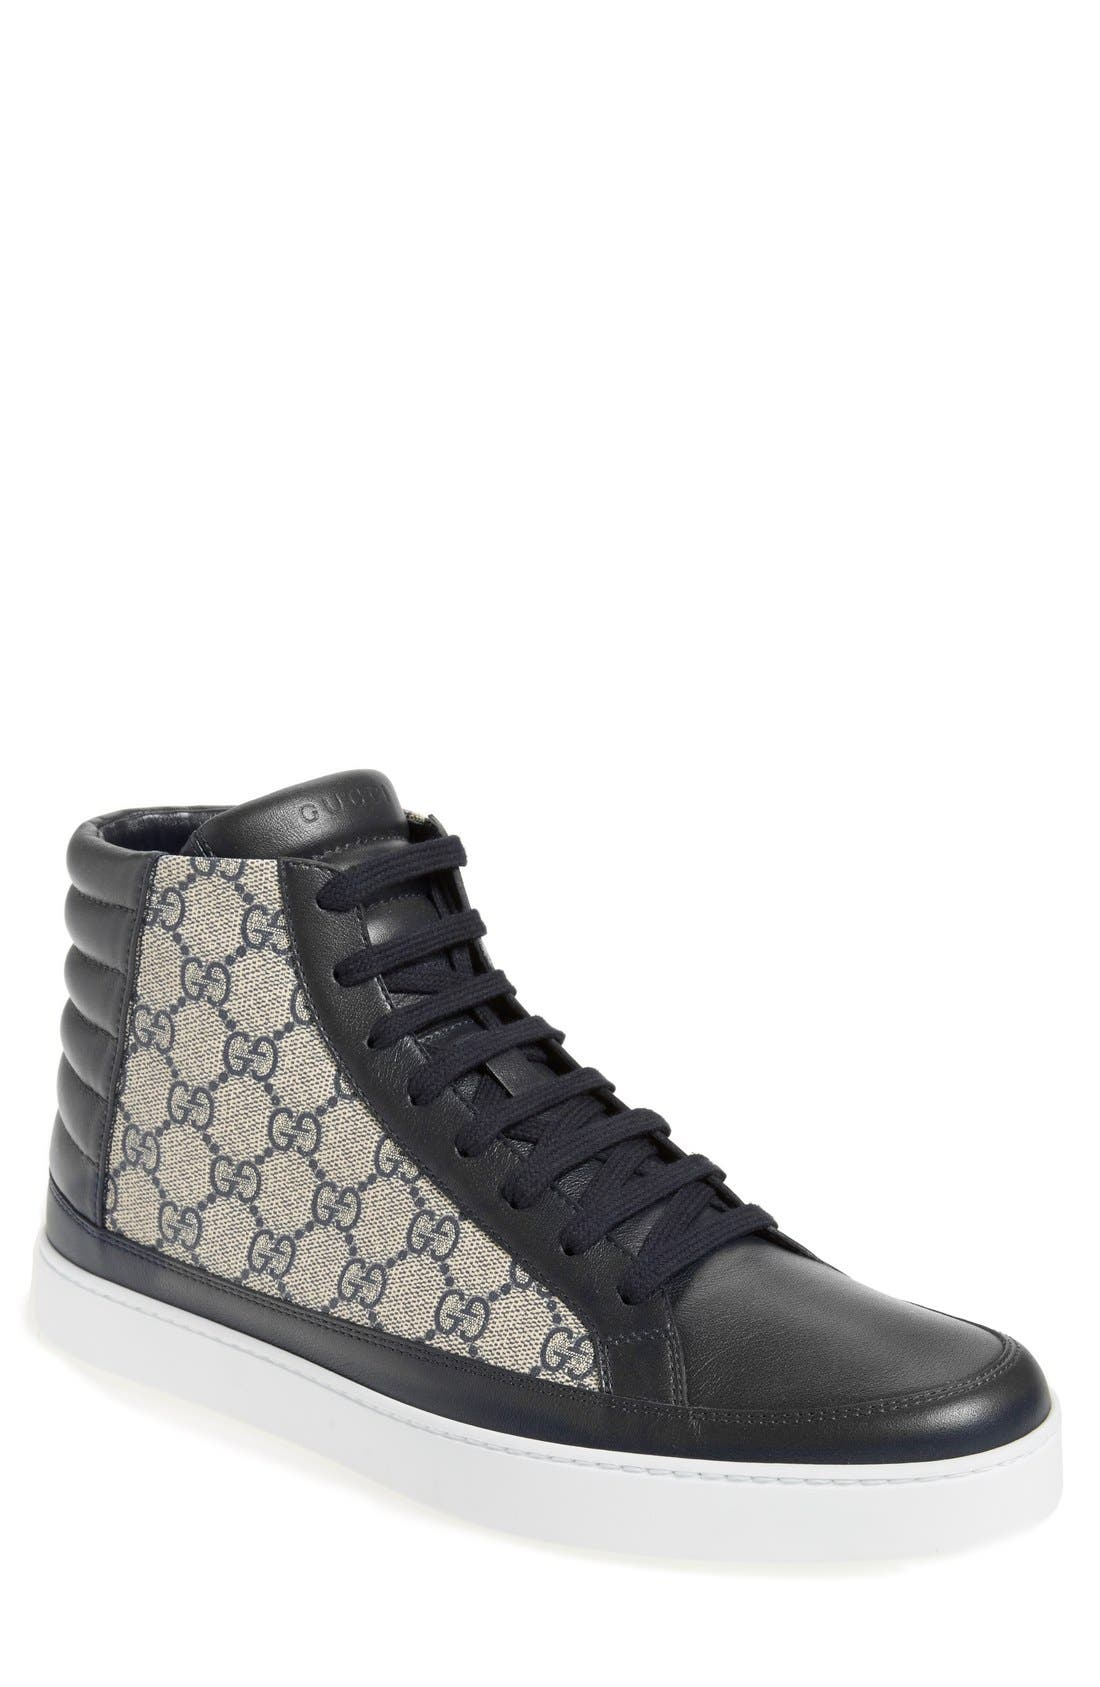 gucci shoes black snake. gucci \u0027common\u0027 high top sneaker shoes black snake